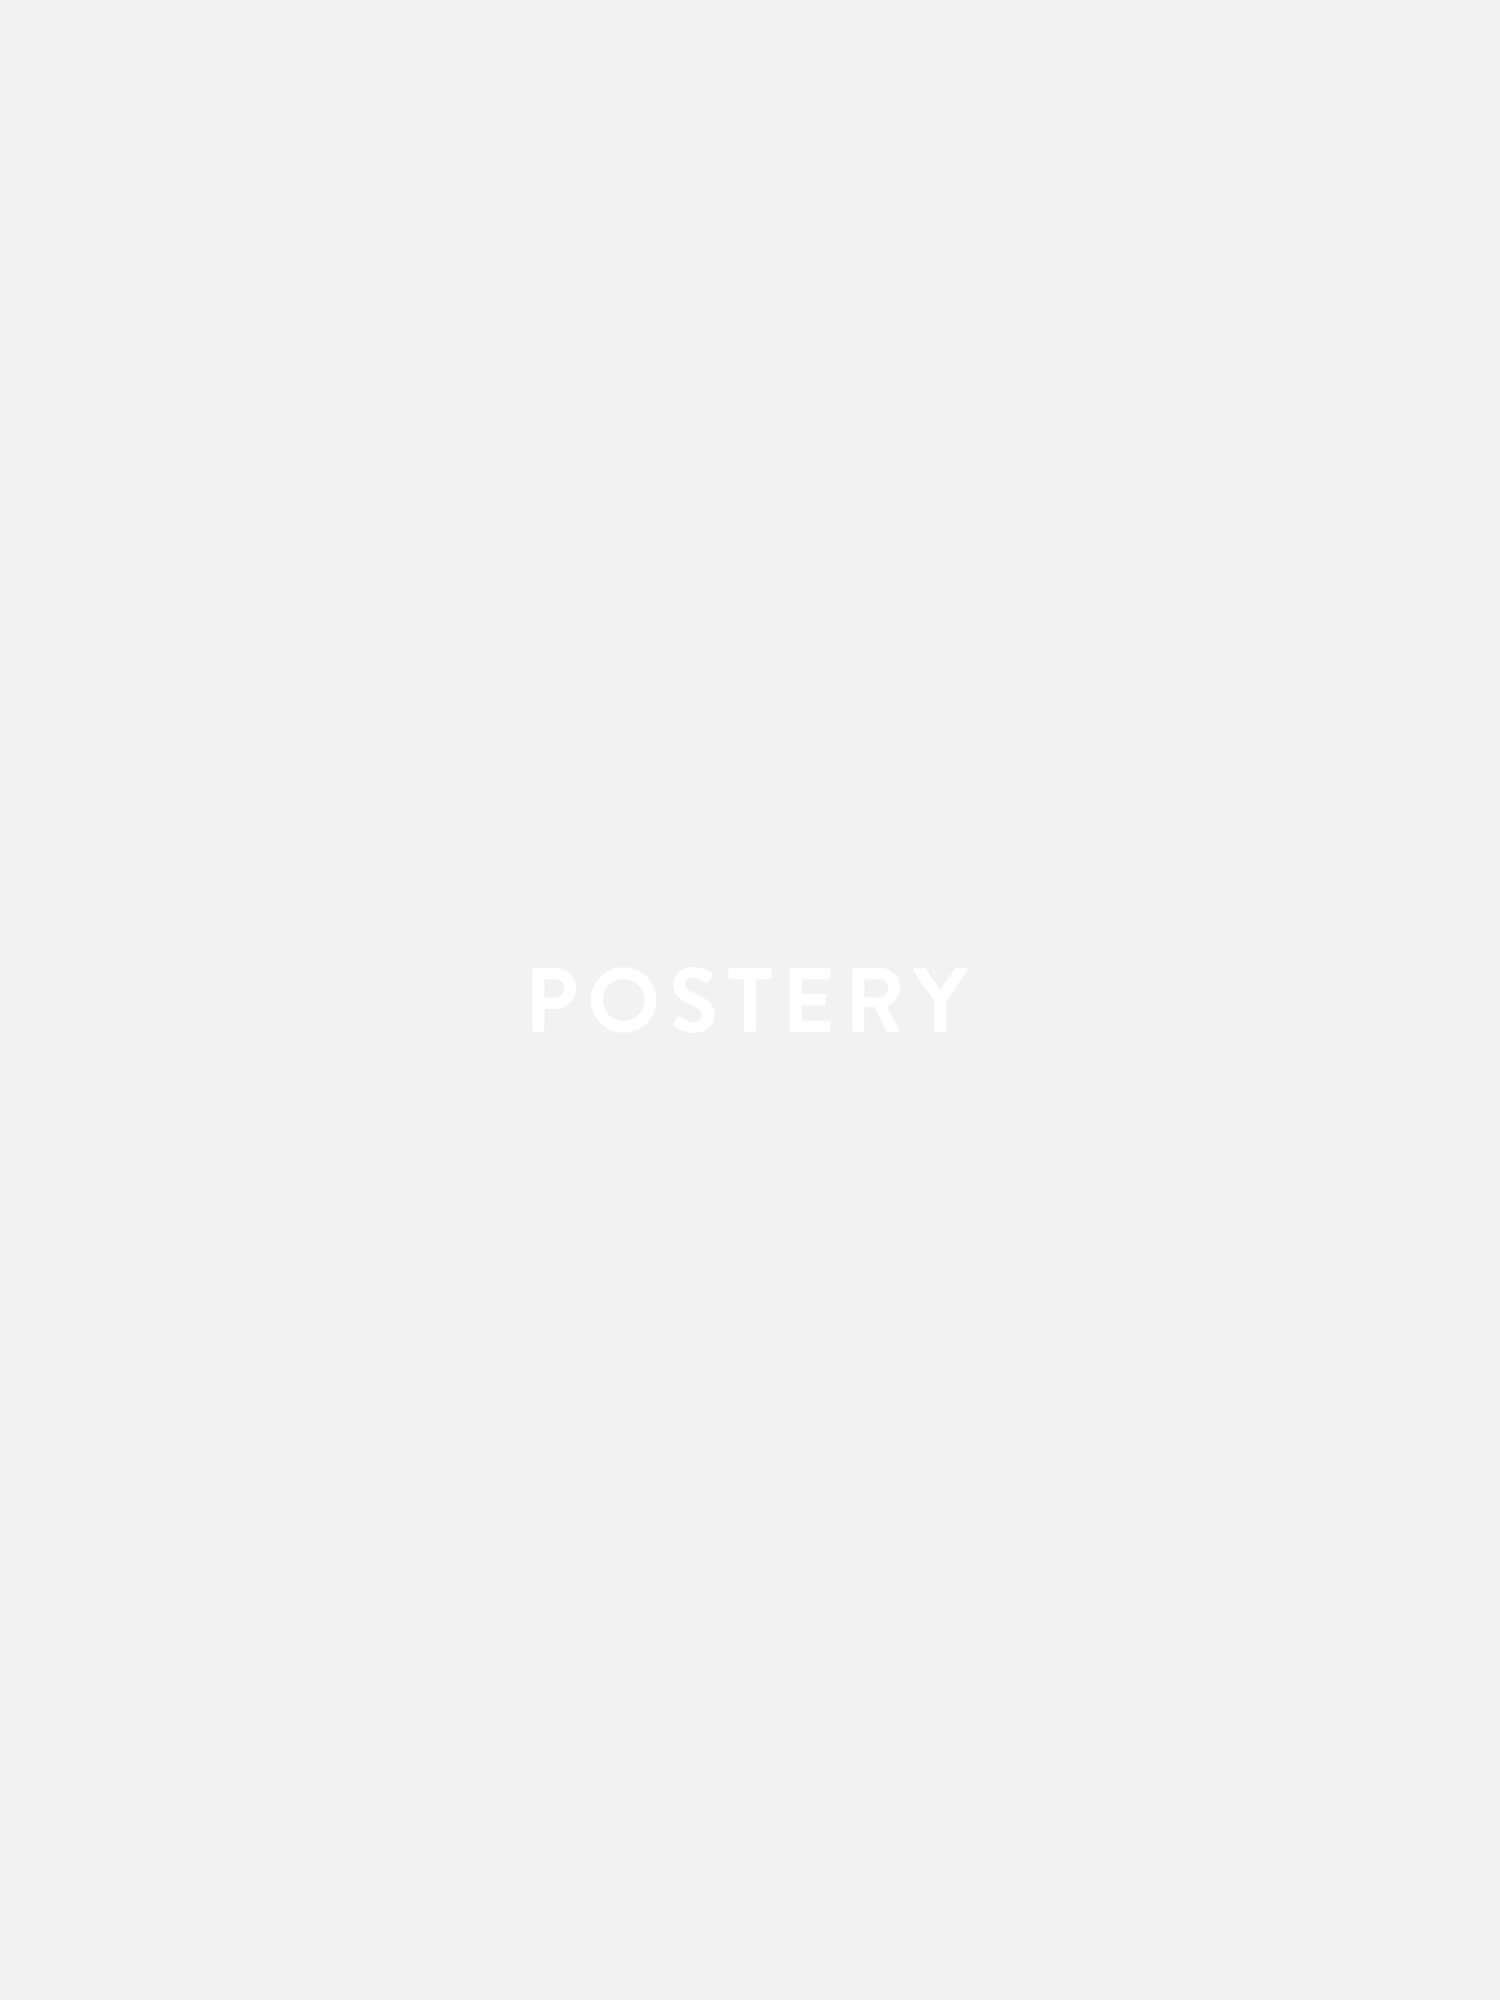 She is Free Poster